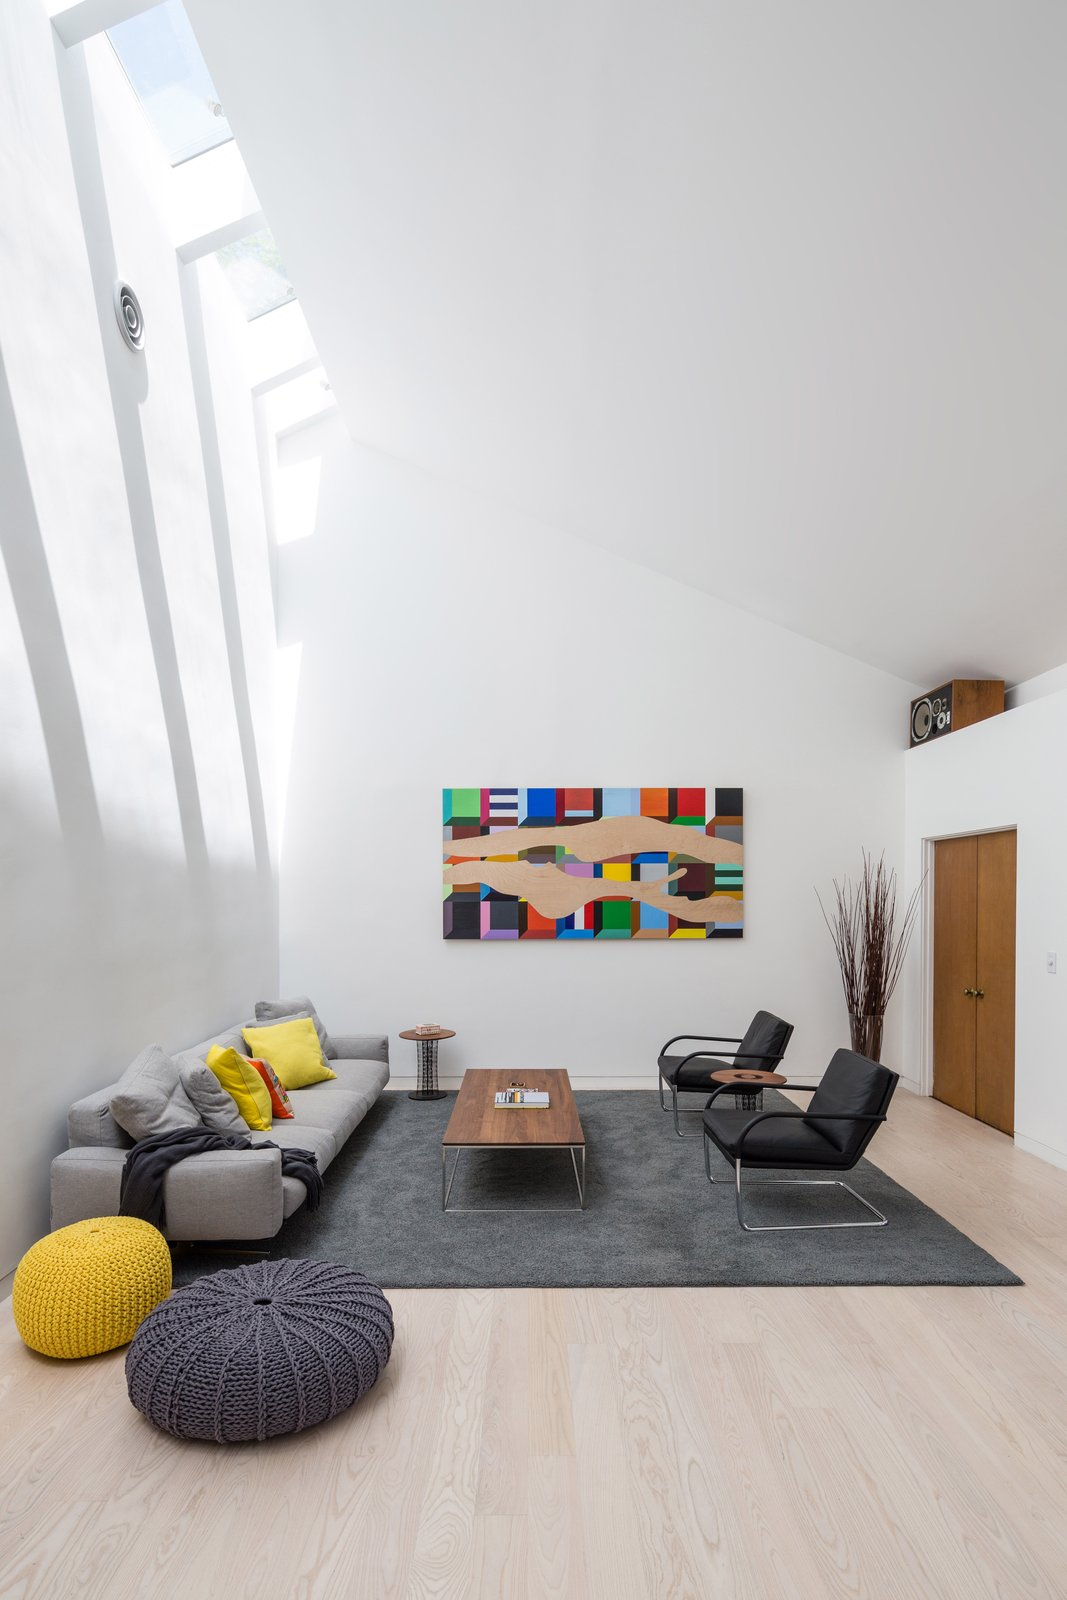 Living Room, Chair, Sofa, Coffee Tables, and Light Hardwood Floor Architect Dan Brunn's #9 Dream House captures the contemporary style of the designers Dwell selected for Decorist.  Photo 1 of 1 in Dwell Teams with Decorist to Make Getting Modern Interior Design Easy